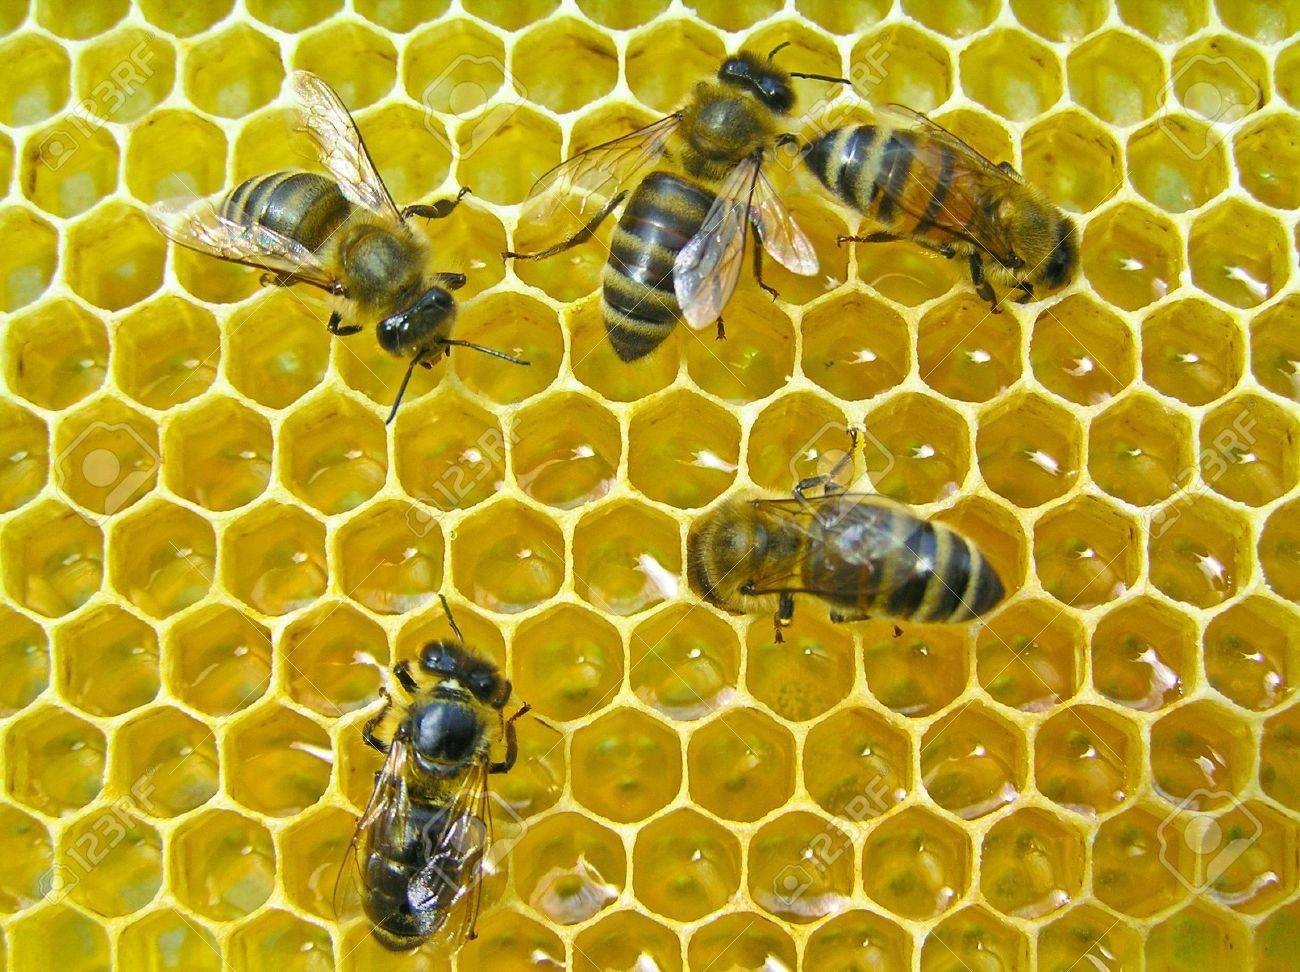 The bees make the nectar into honey. They recruited him into the body and enrich the enzymes. - 7467953